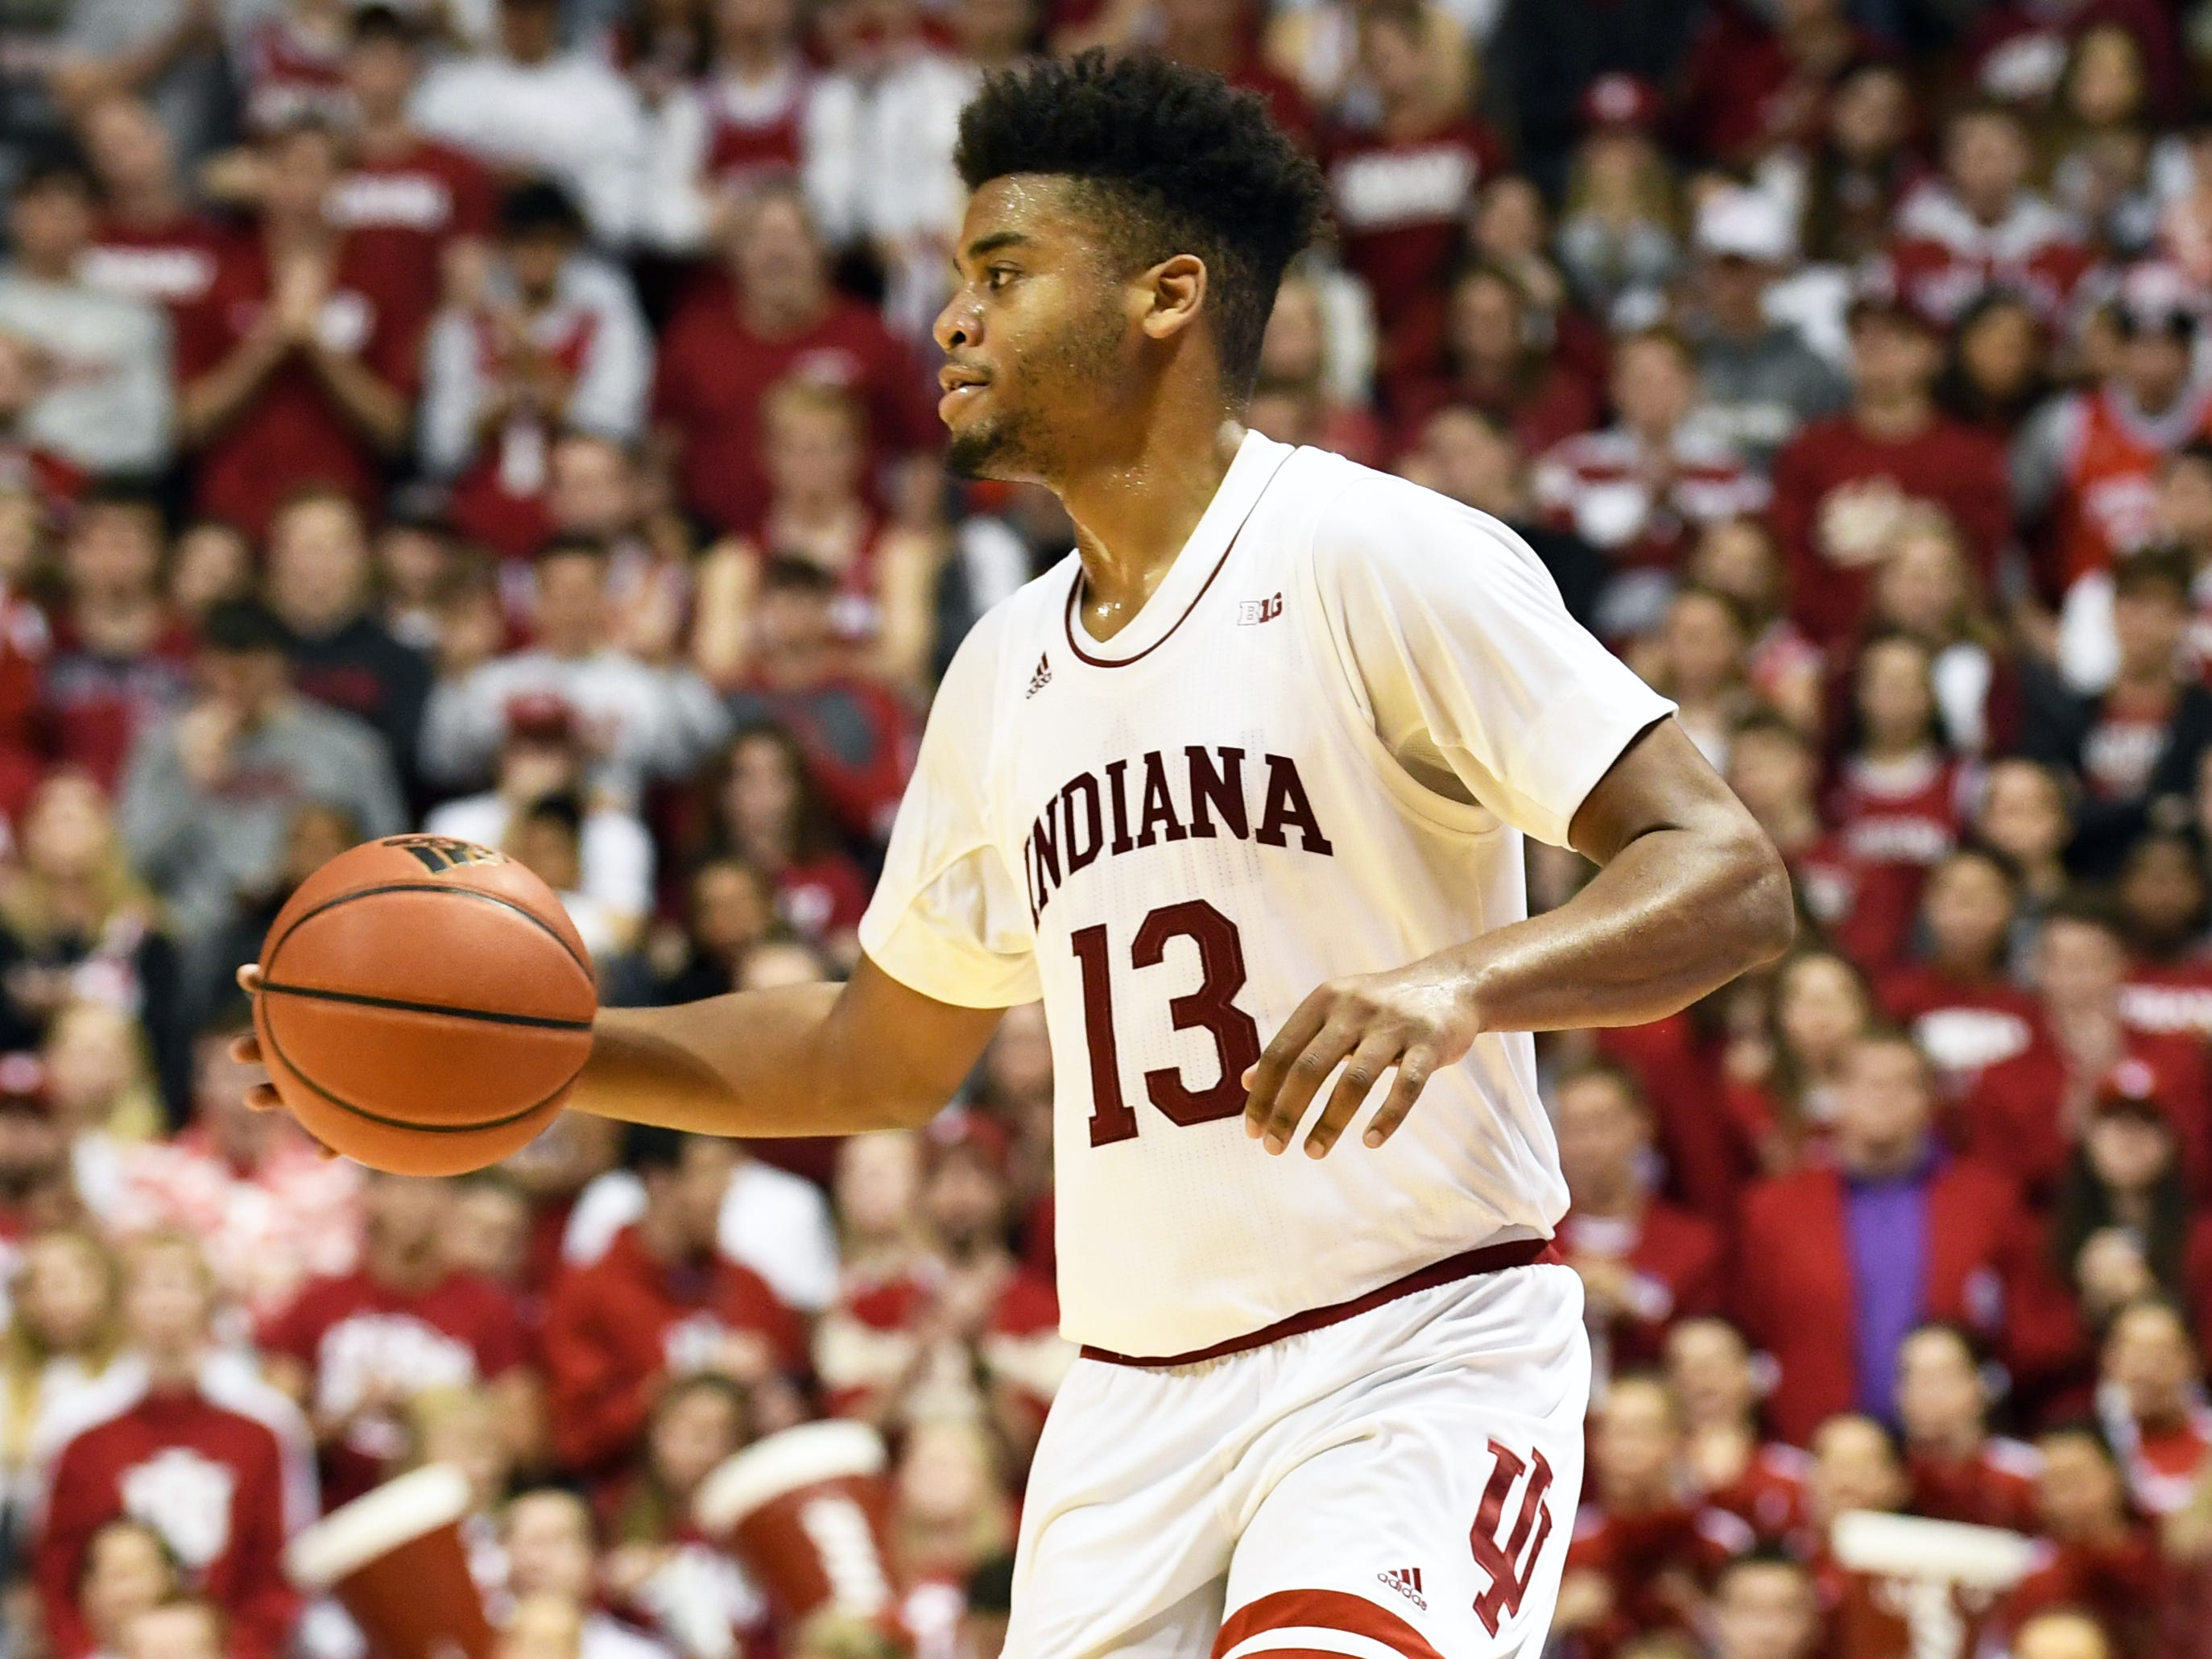 Indiana Hoosiers forward Juwan Morgan (13) brings the ball up the court during the game against Northwestern at Simon Skjodt Assembly Hall in Bloomington, Ind., on Saturday, Dec. 1, 2018.